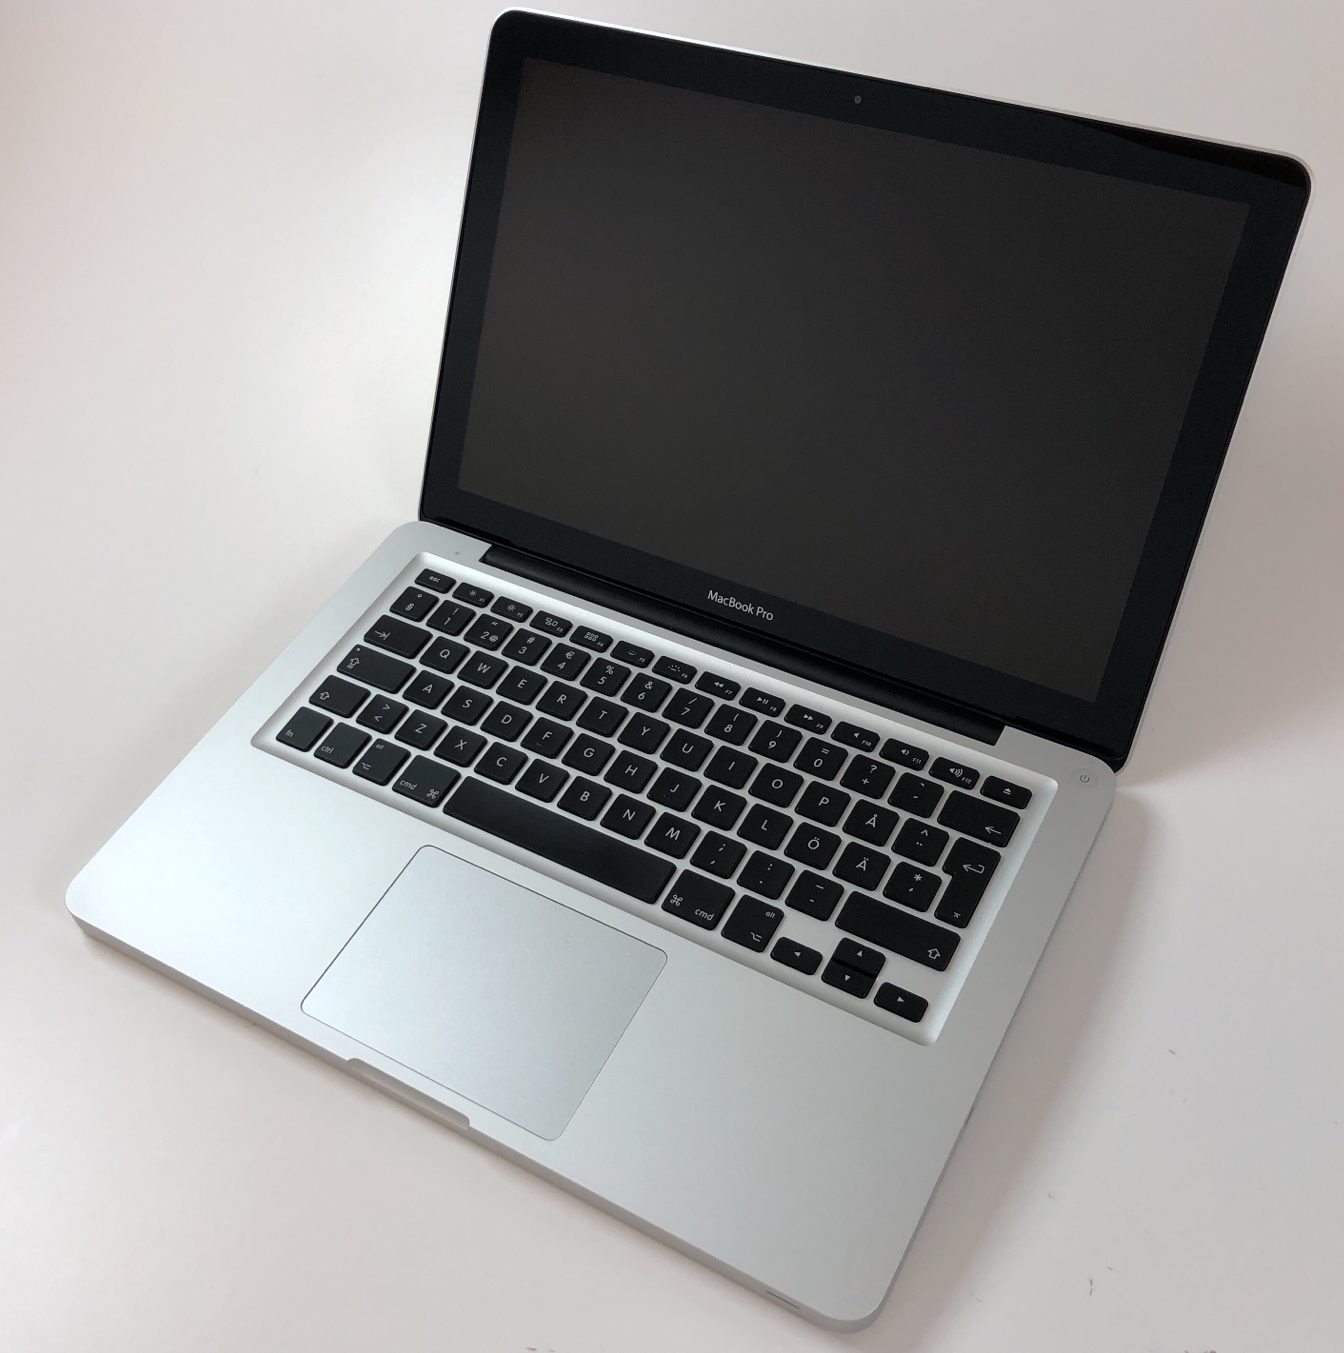 "MacBook Pro 13"" Mid 2012 (Intel Core i5 2.5 GHz 4 GB RAM 500 GB HDD), Intel Core i5 2.5 GHz, 4 GB RAM, 500 GB HDD, Kuva 1"